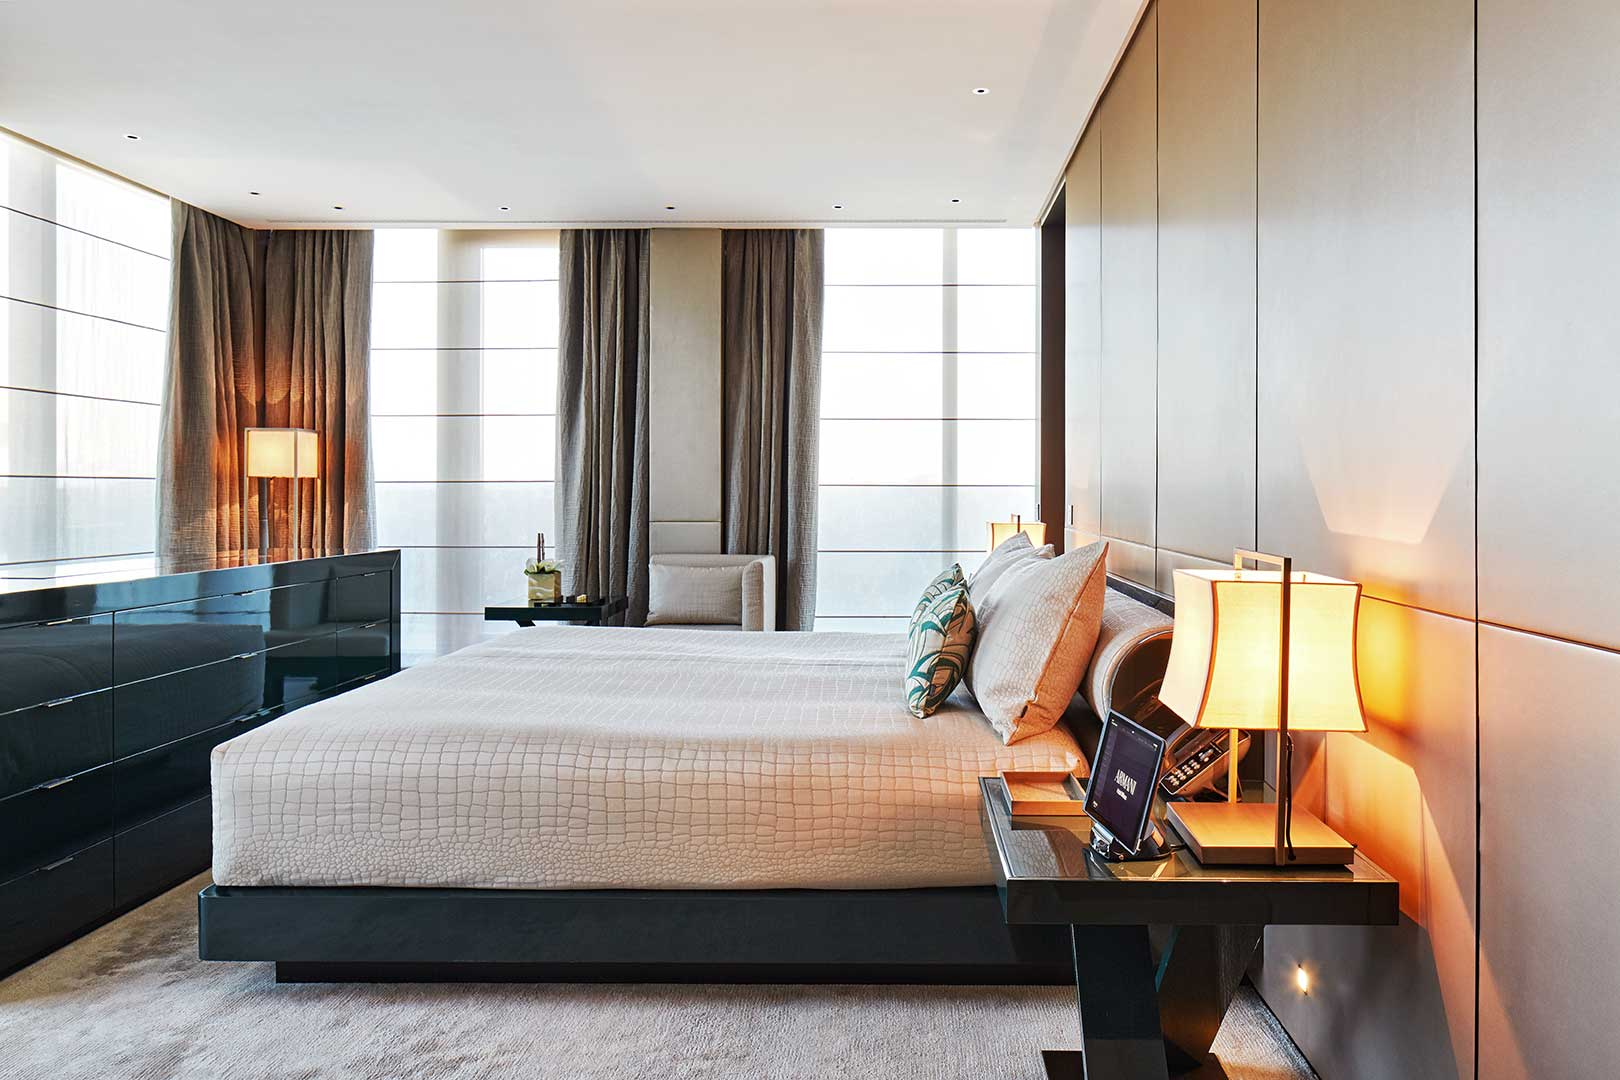 Armani hotel milano flawless milano the lifestyle guide for Hotel the best milano